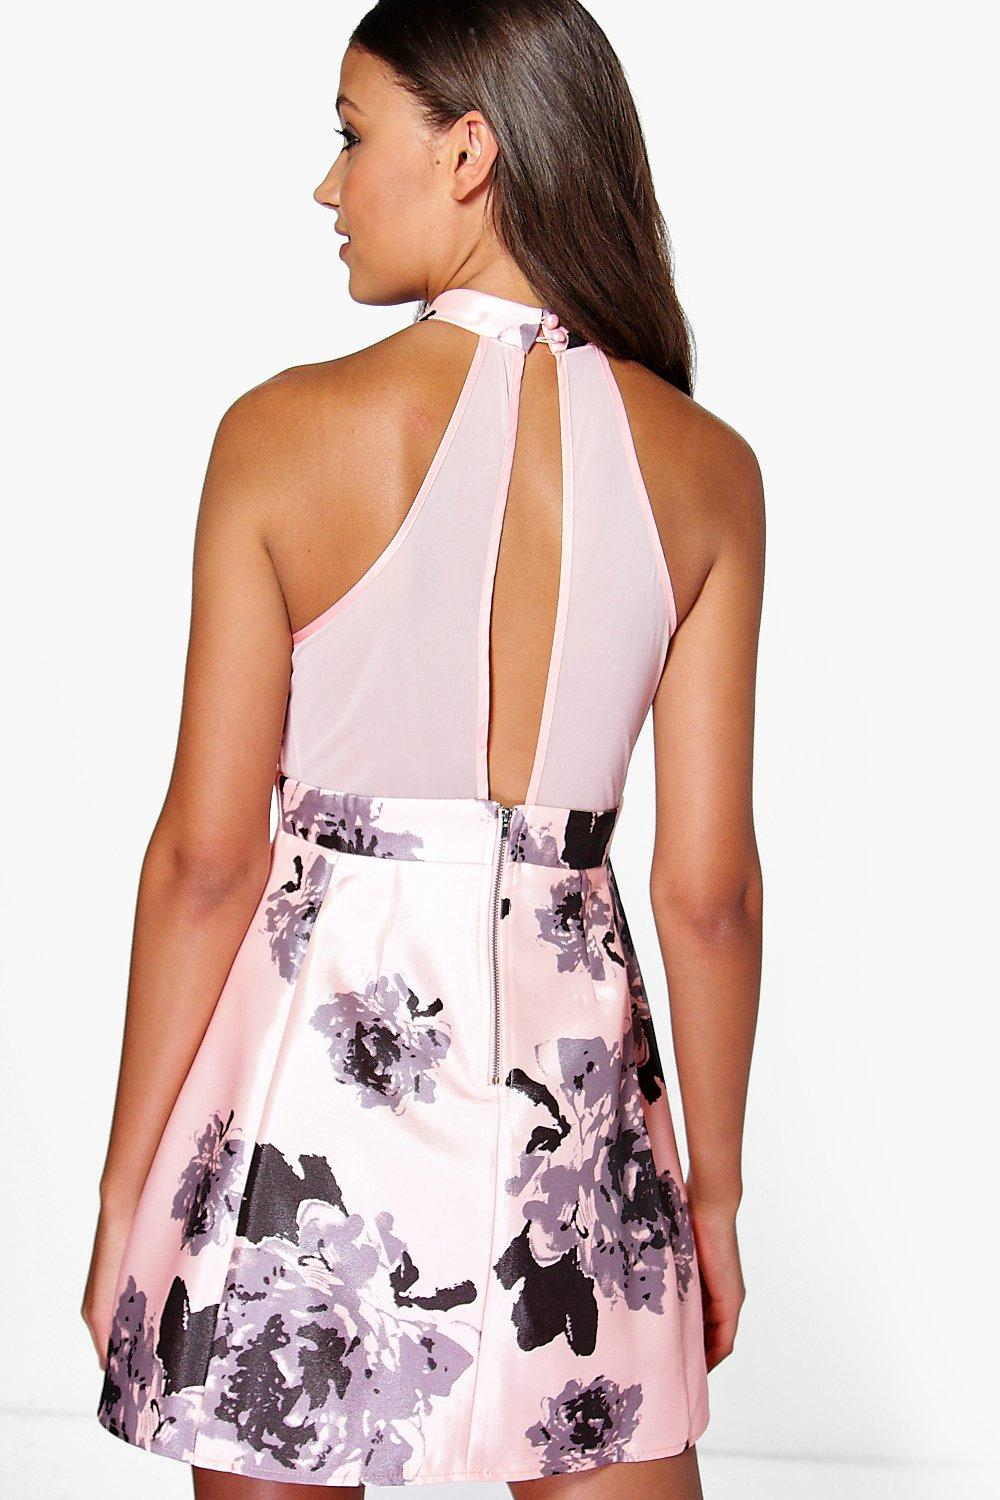 Boohoo Floral High Neck Skater Dress Cheap Prices Authentic How Much Cheap Online Shop vUvgNZhiuz